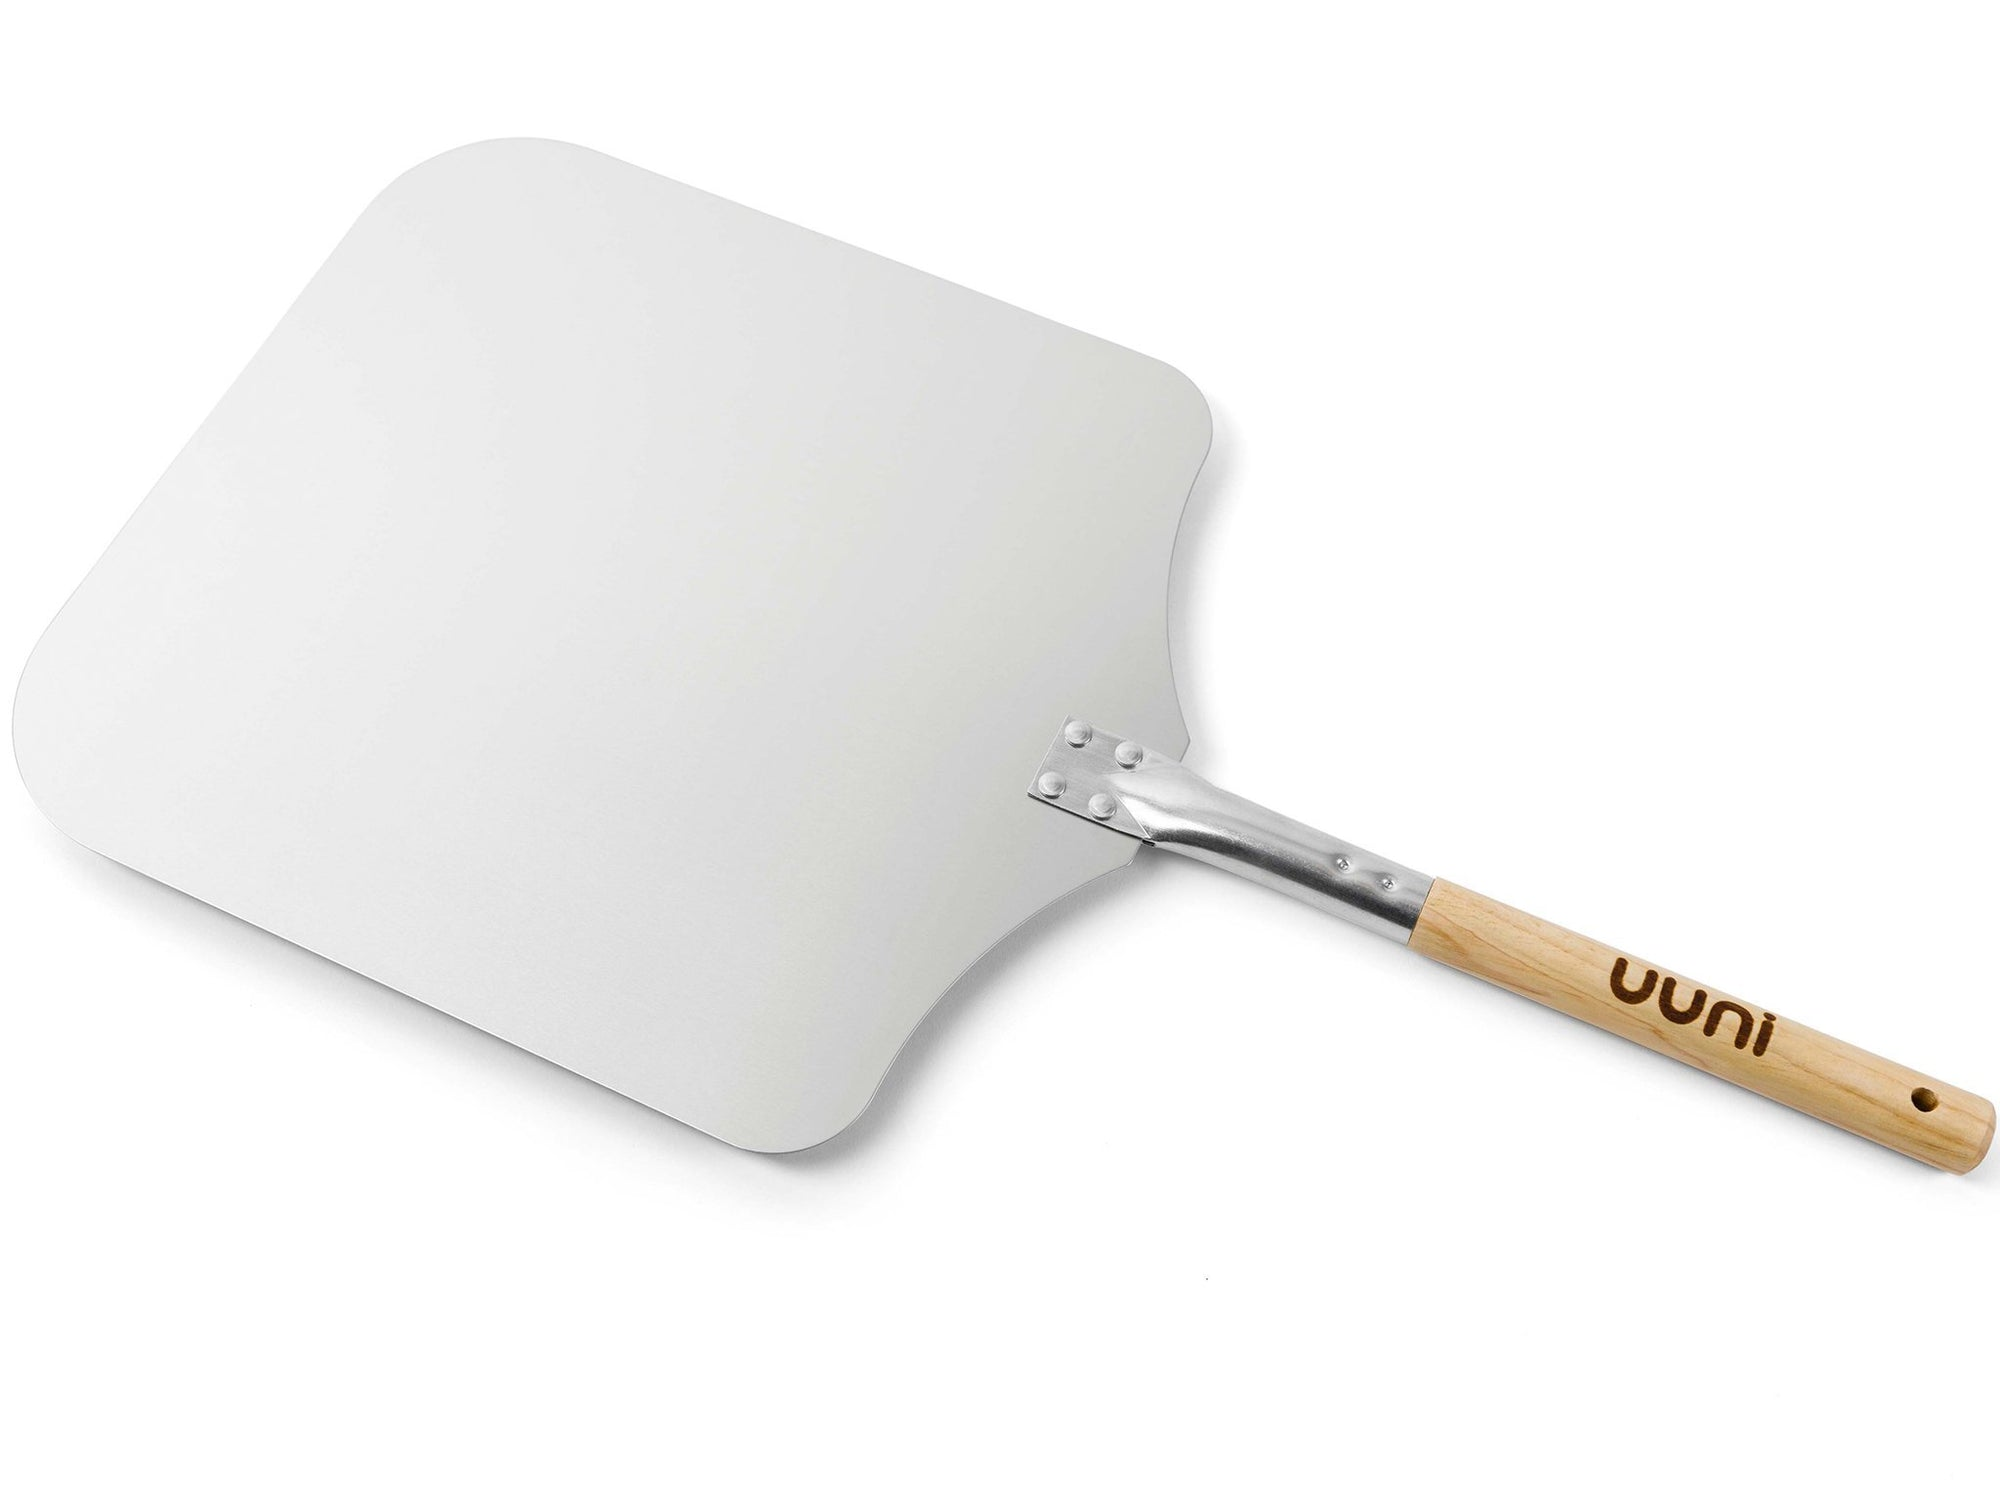 Ooni Pizza PEEL - For OONI Pro Portable WoodFired Pizza Oven